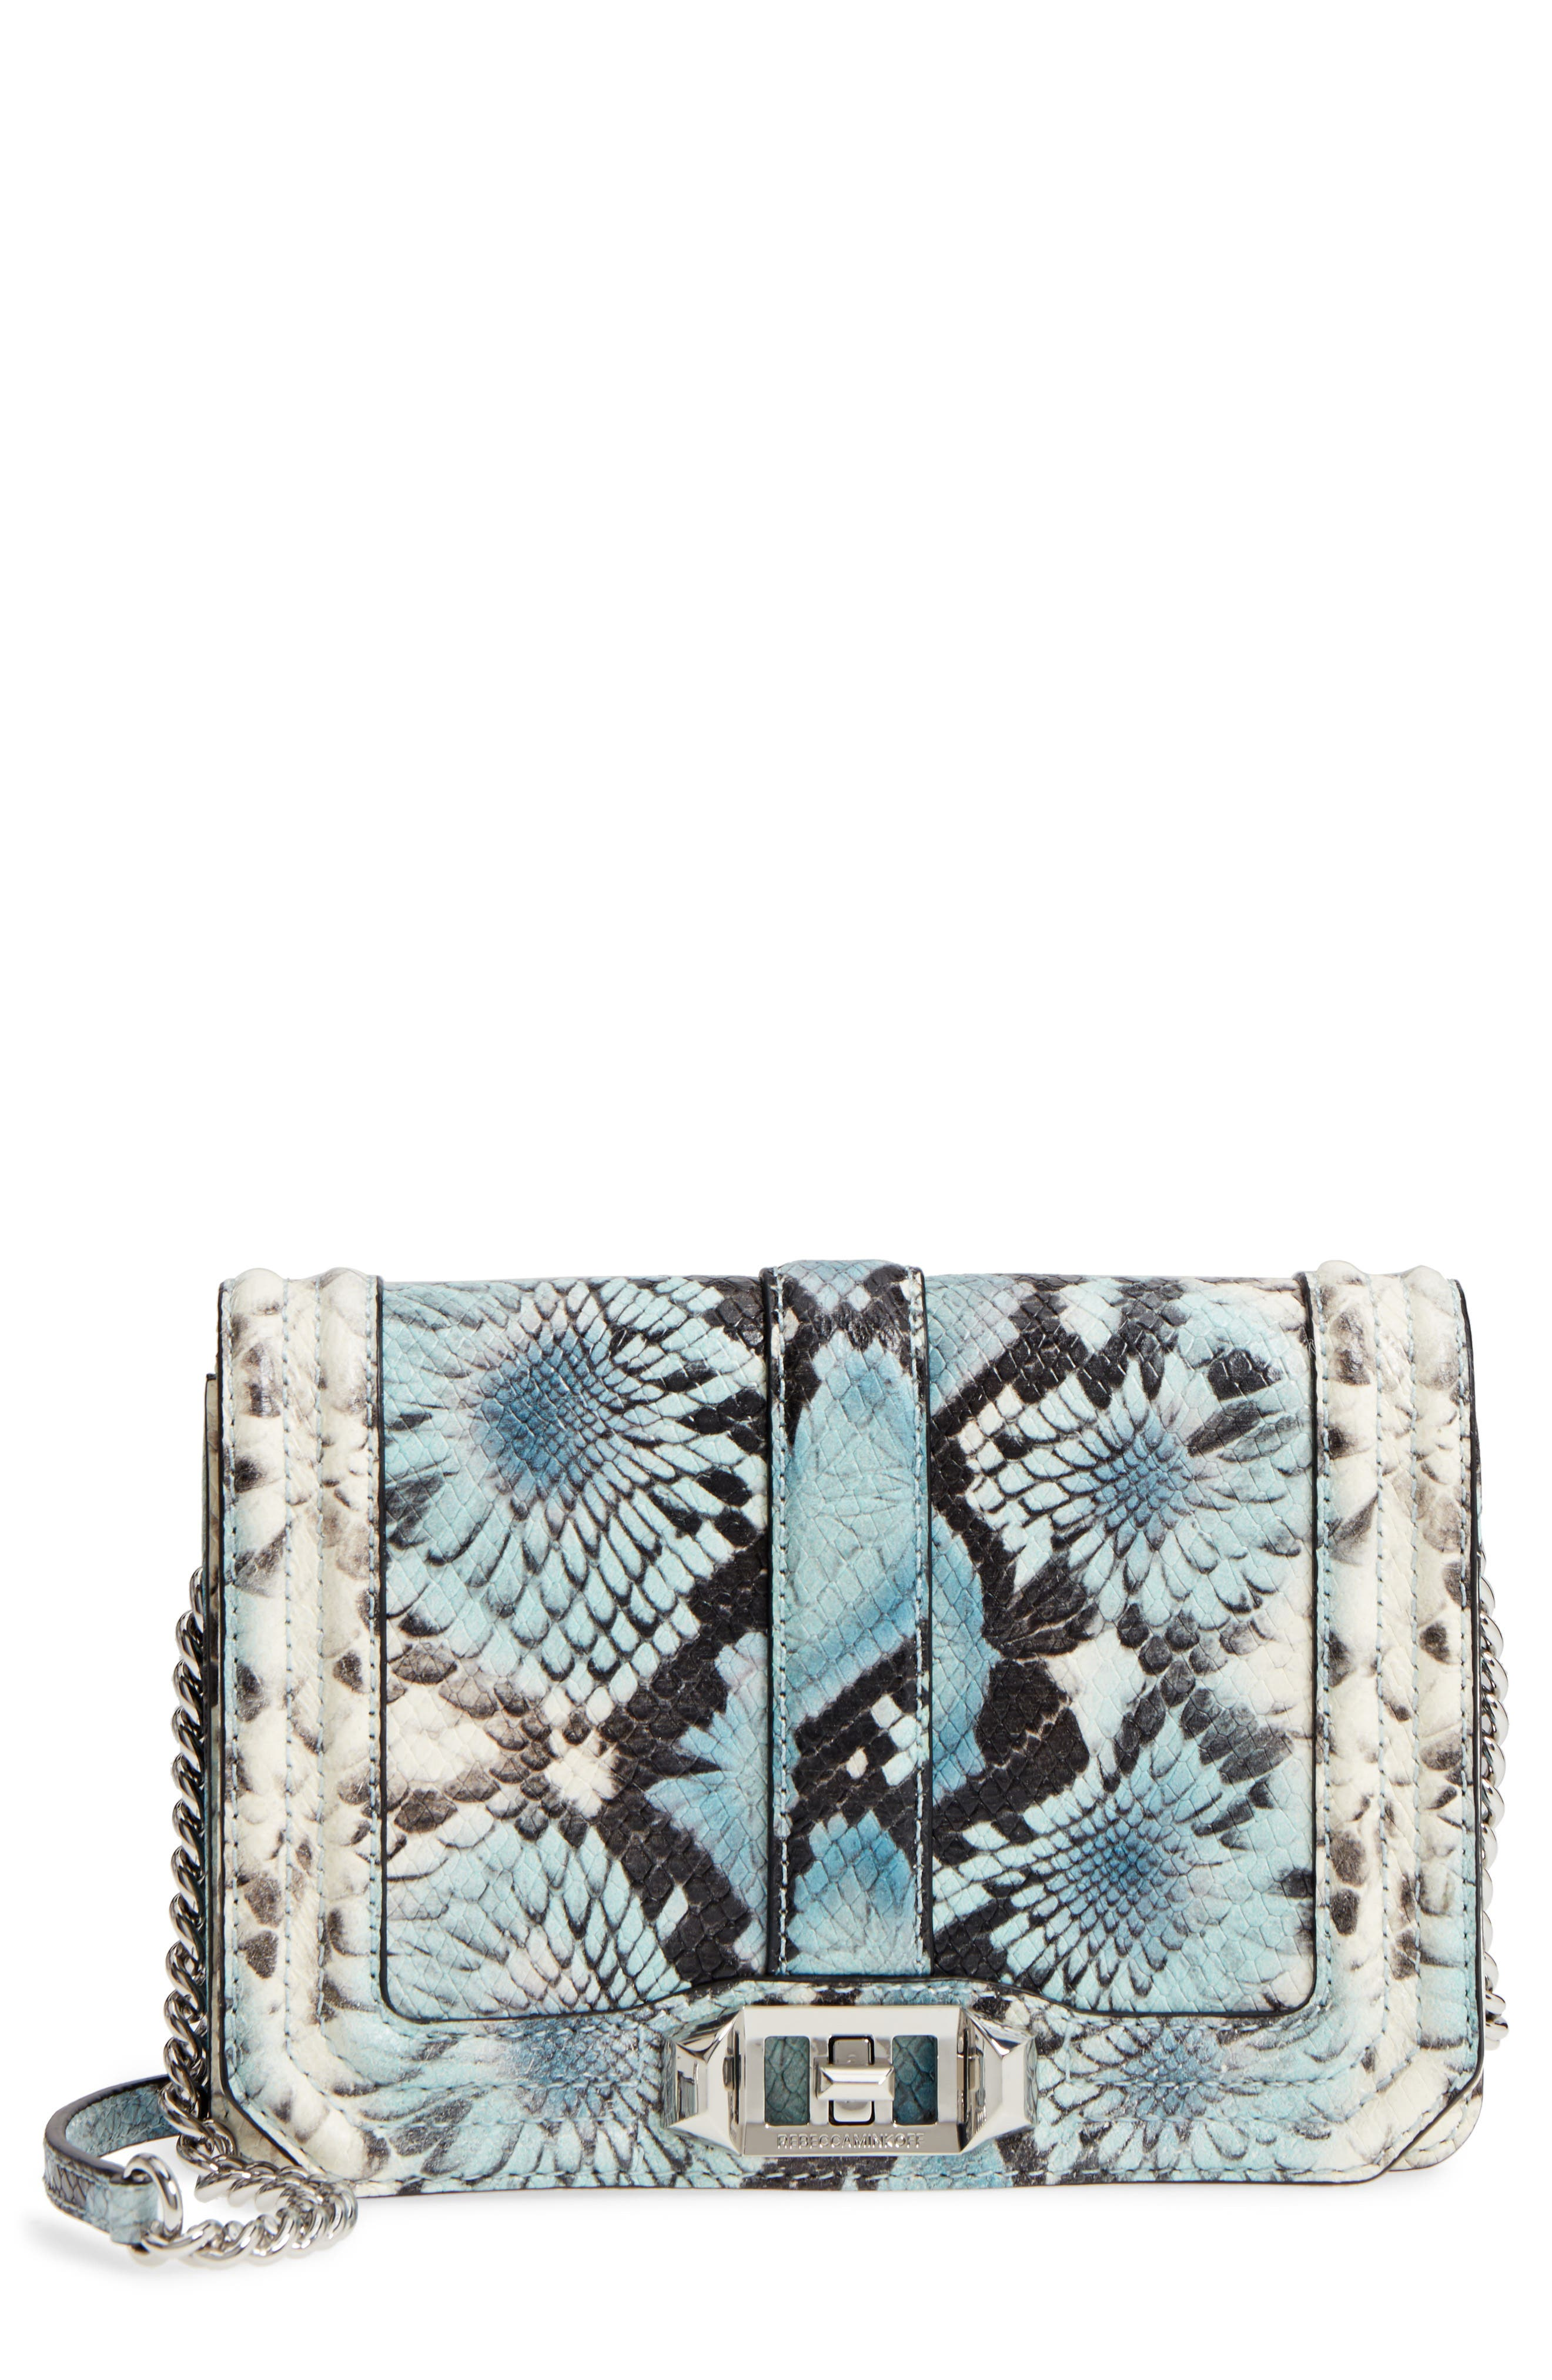 Small Love Snake Embossed Leather Crossbody Bag,                         Main,                         color, Blue Multi